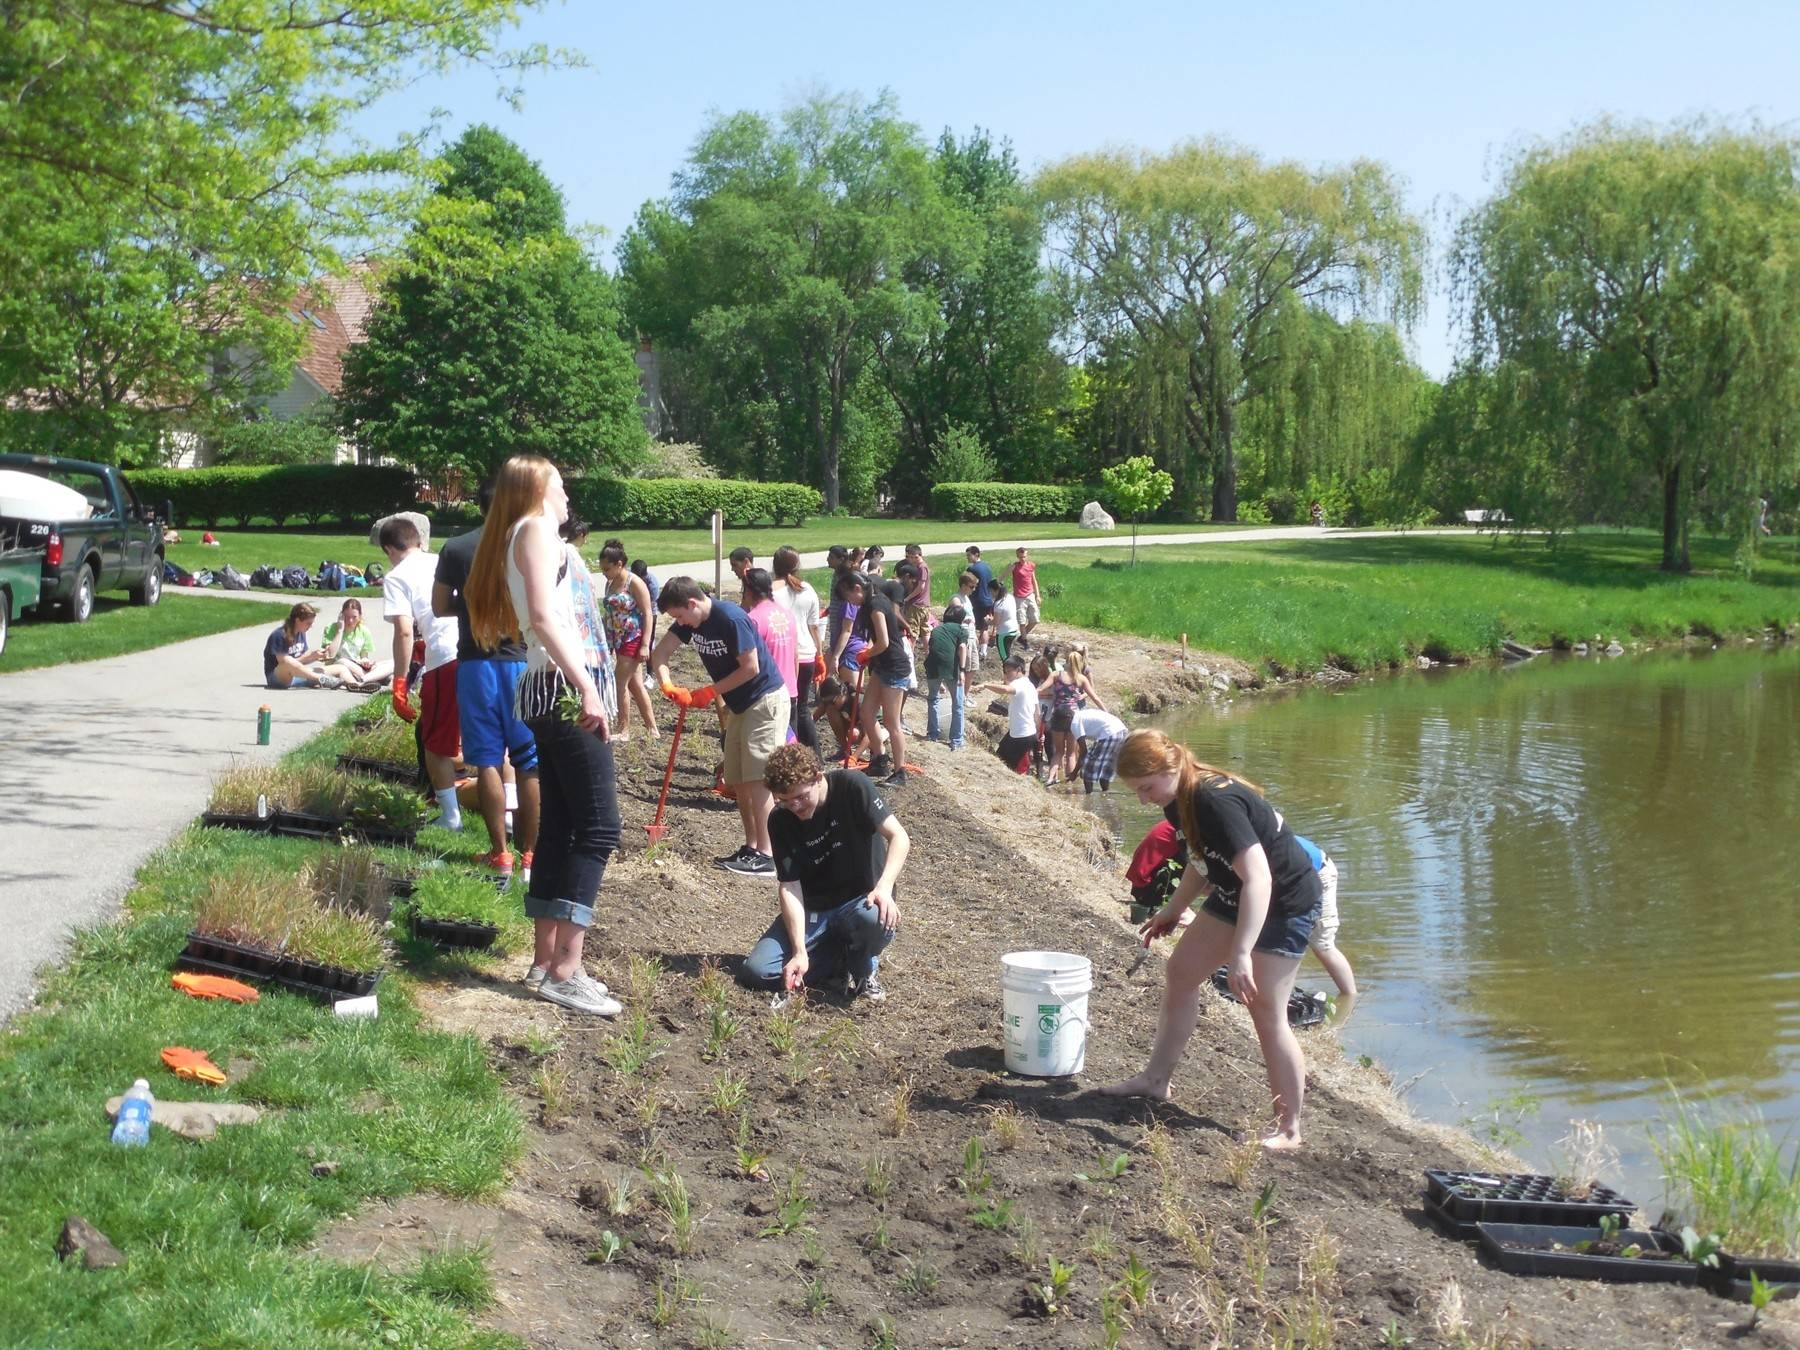 Lining lake shorelines with native plants, these Waubonsie Valley High School students teamed with the Fox Valley Park District to promote sustainability. The plants filter runoff, keeping waterways clean and creating a healthier environment for residents and wildlife alike.